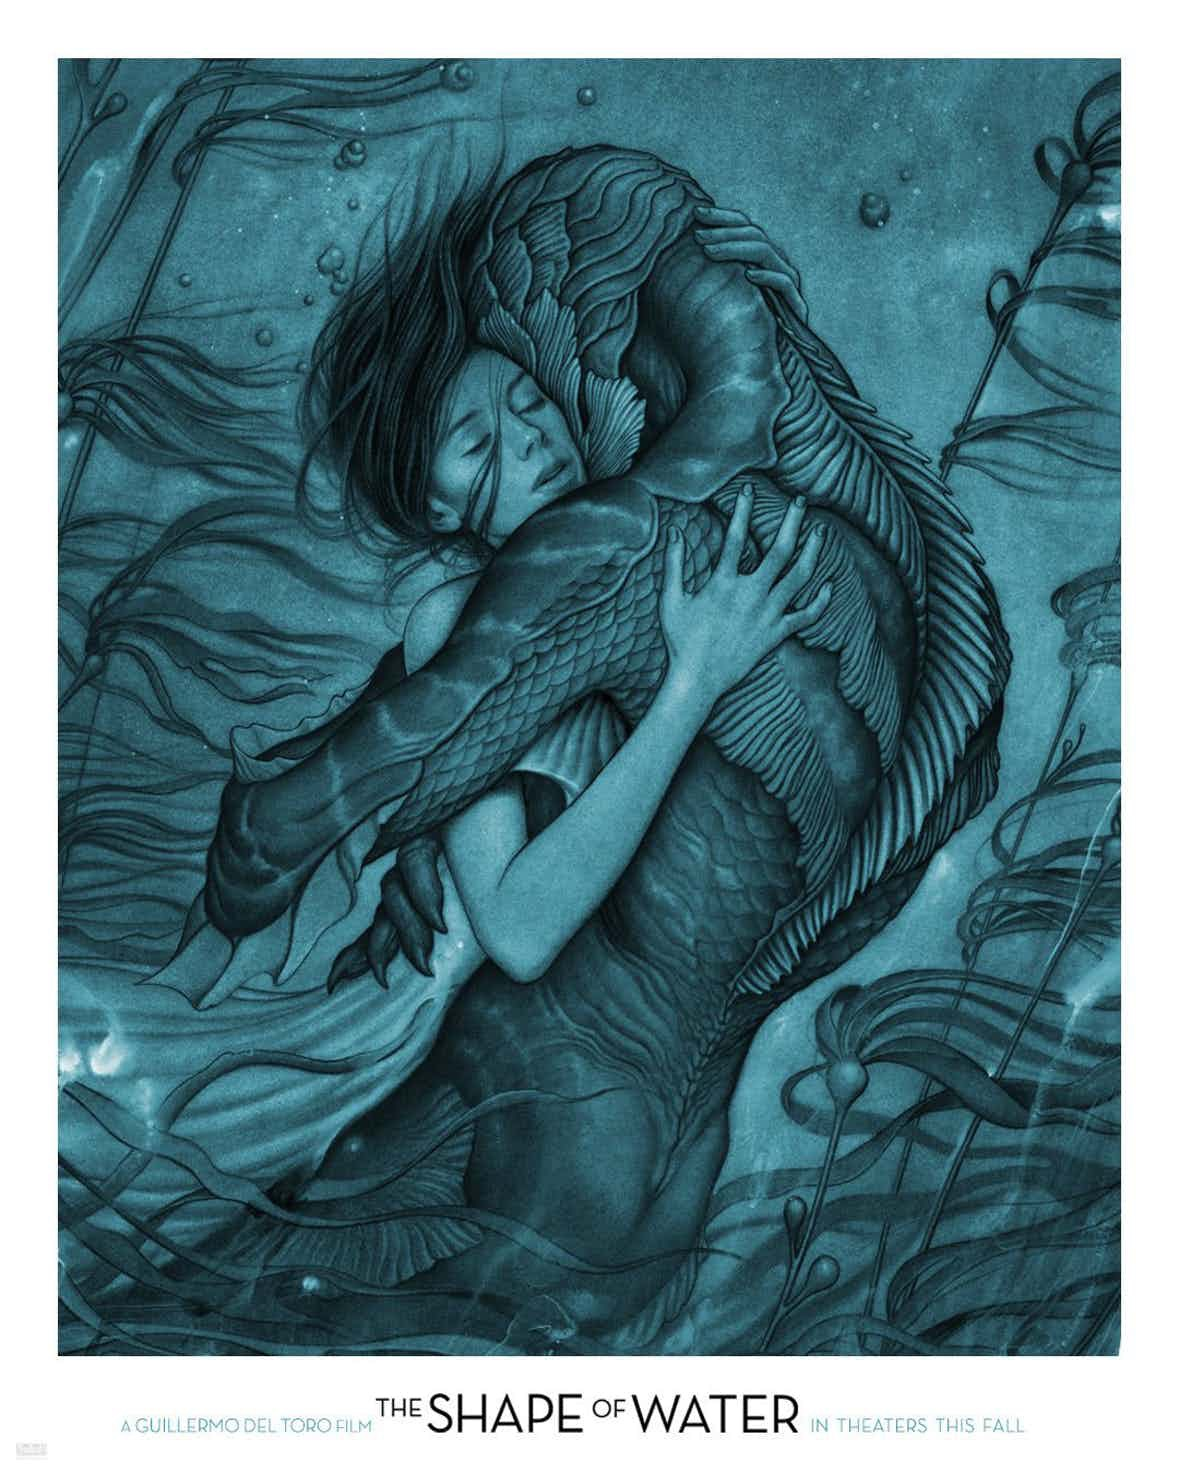 the-shape-of-water-2017-guillermo-del-toro-poster-1601651863.jpg